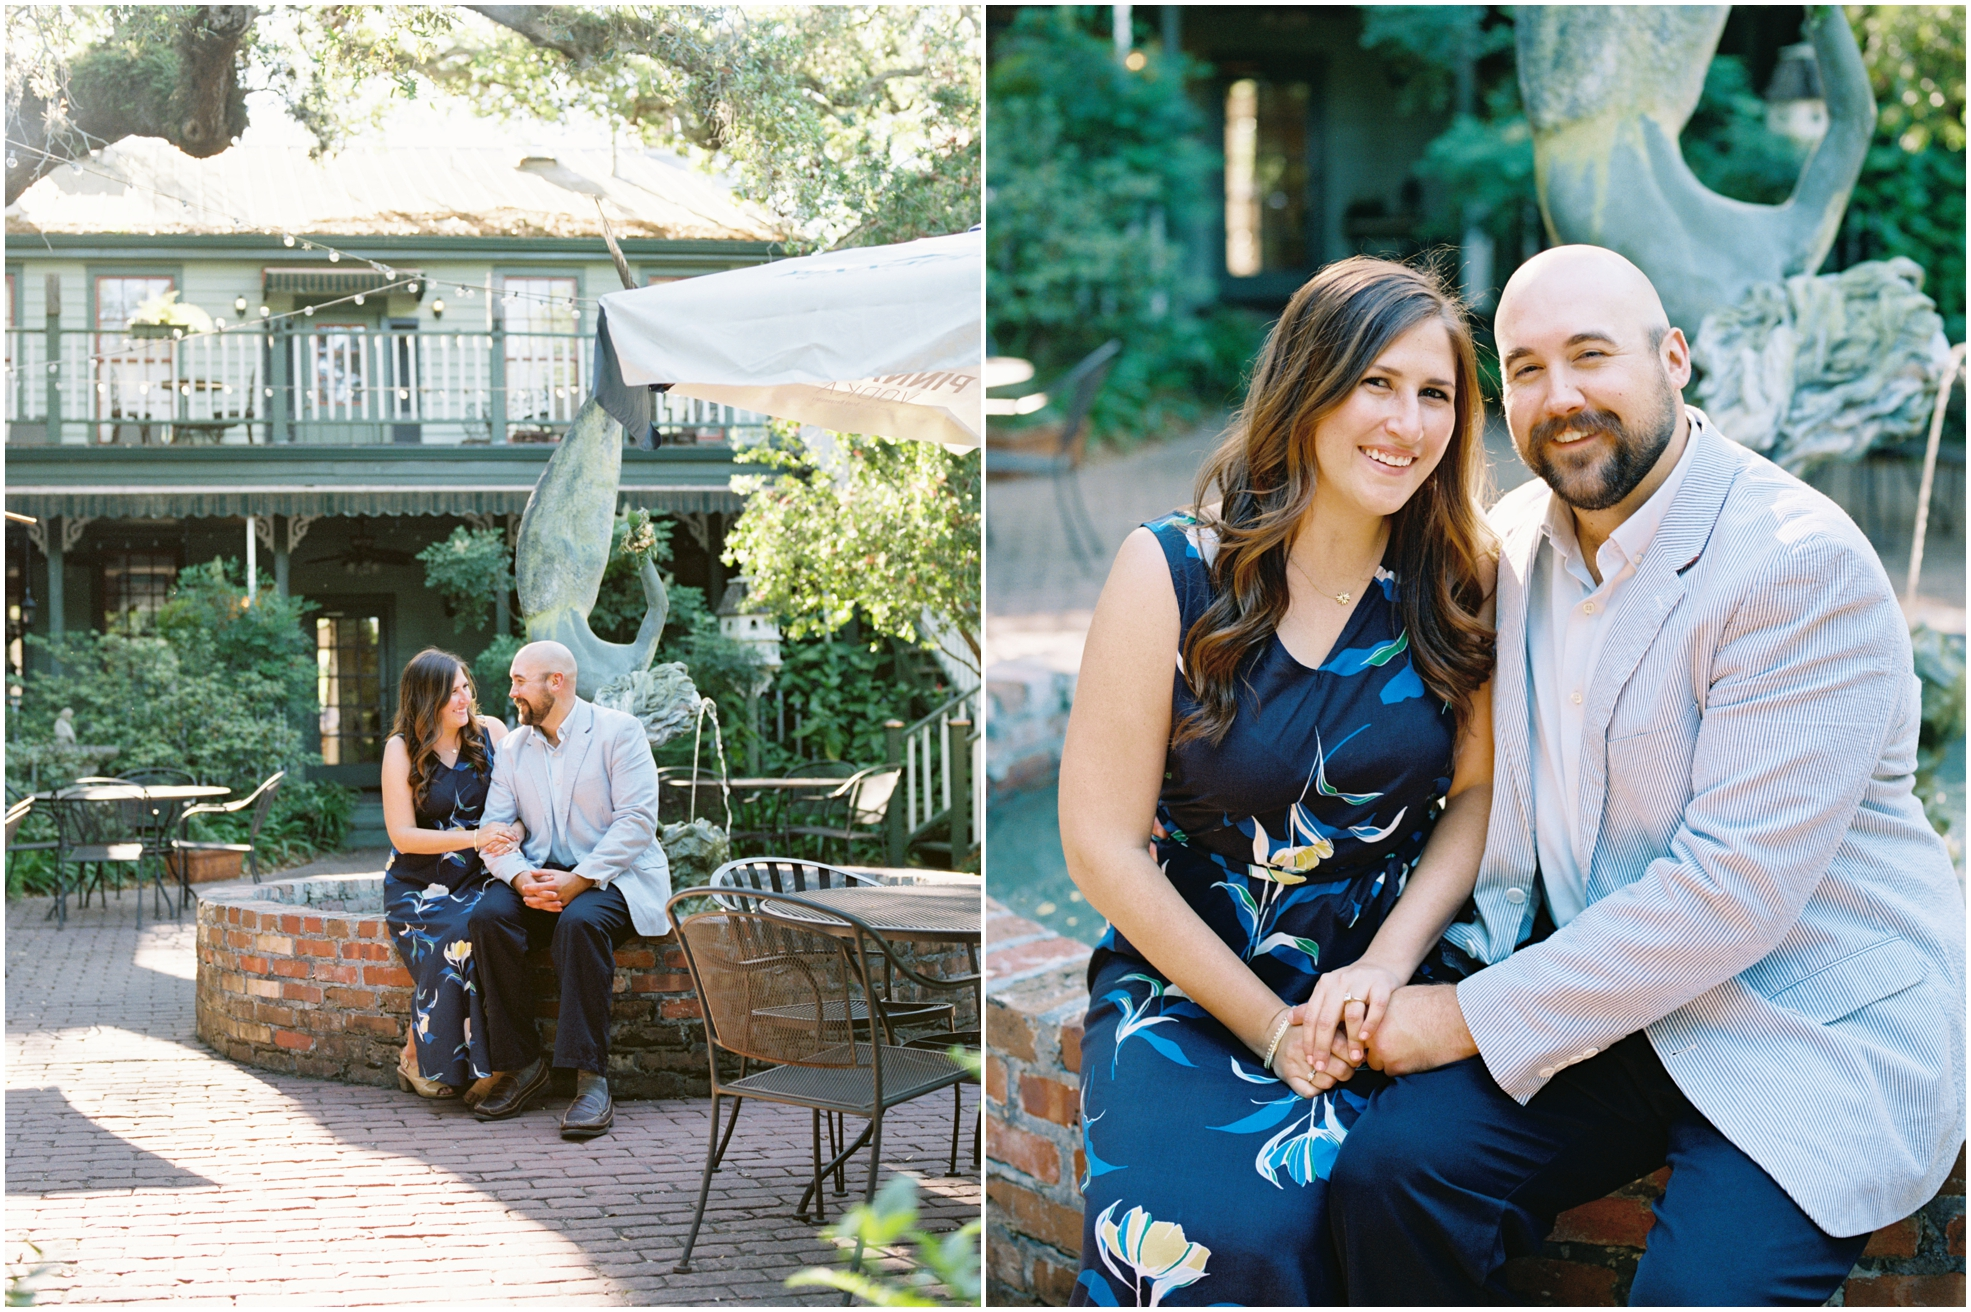 Lisa Silva Photography- Jacksonville, St. Augustine, Amelia Island, Ponte Vedra Beach, North East Florida Fine Art Film Photographer- Engagement Session in Historic Downtown Fernandina Beach- Amelia Island Wedding Photographer_0022.jpg